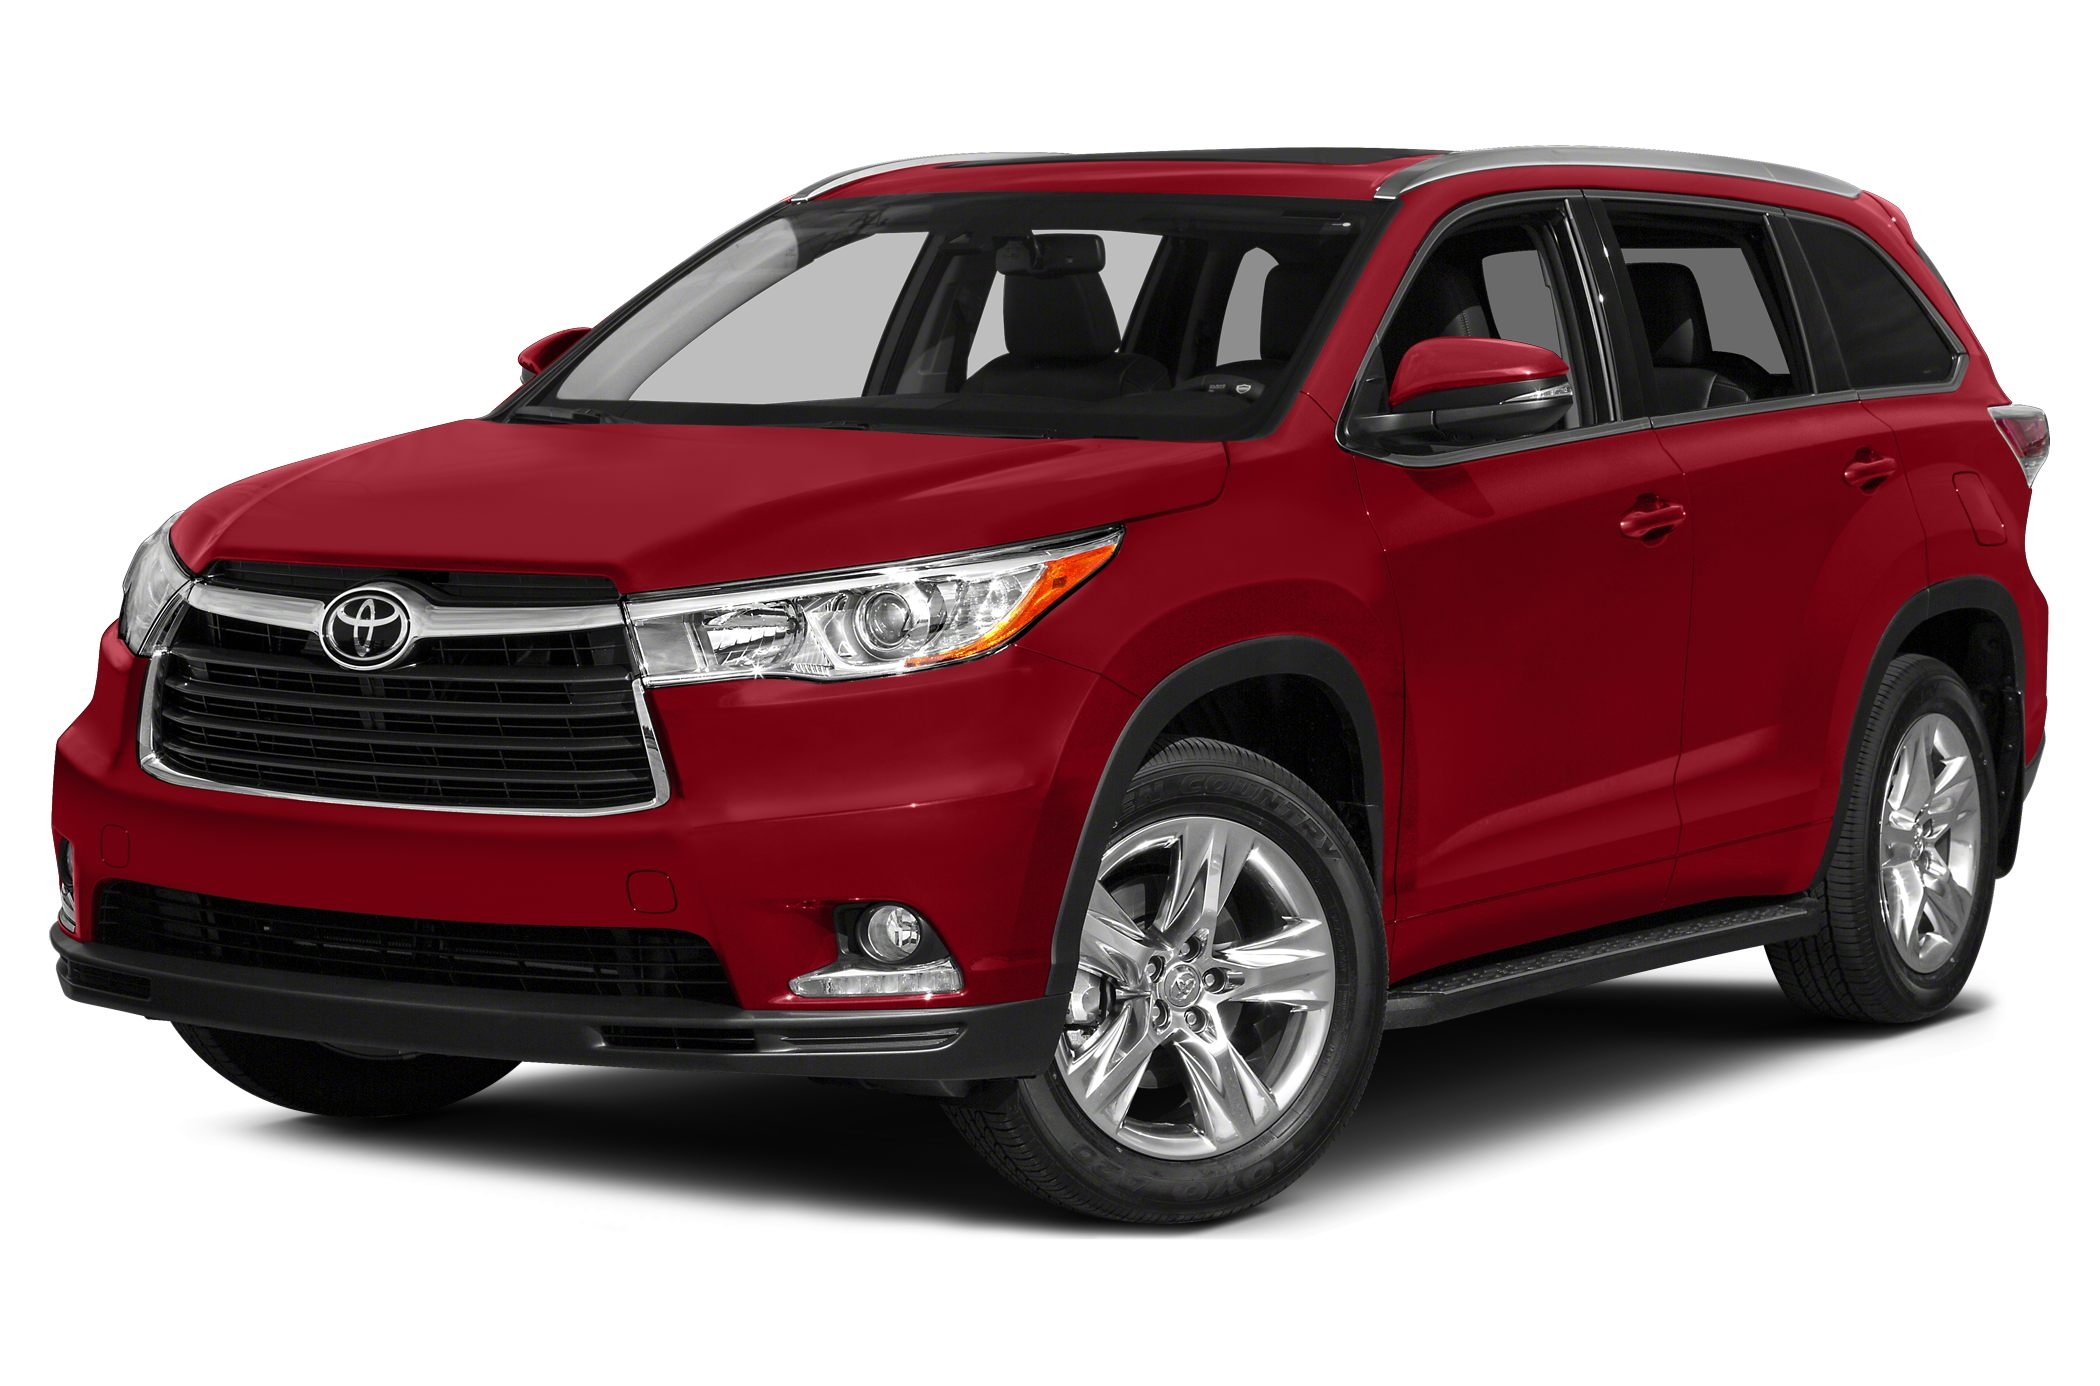 new 2015 toyota highlander price photos reviews safety 2015 highlander invoice price